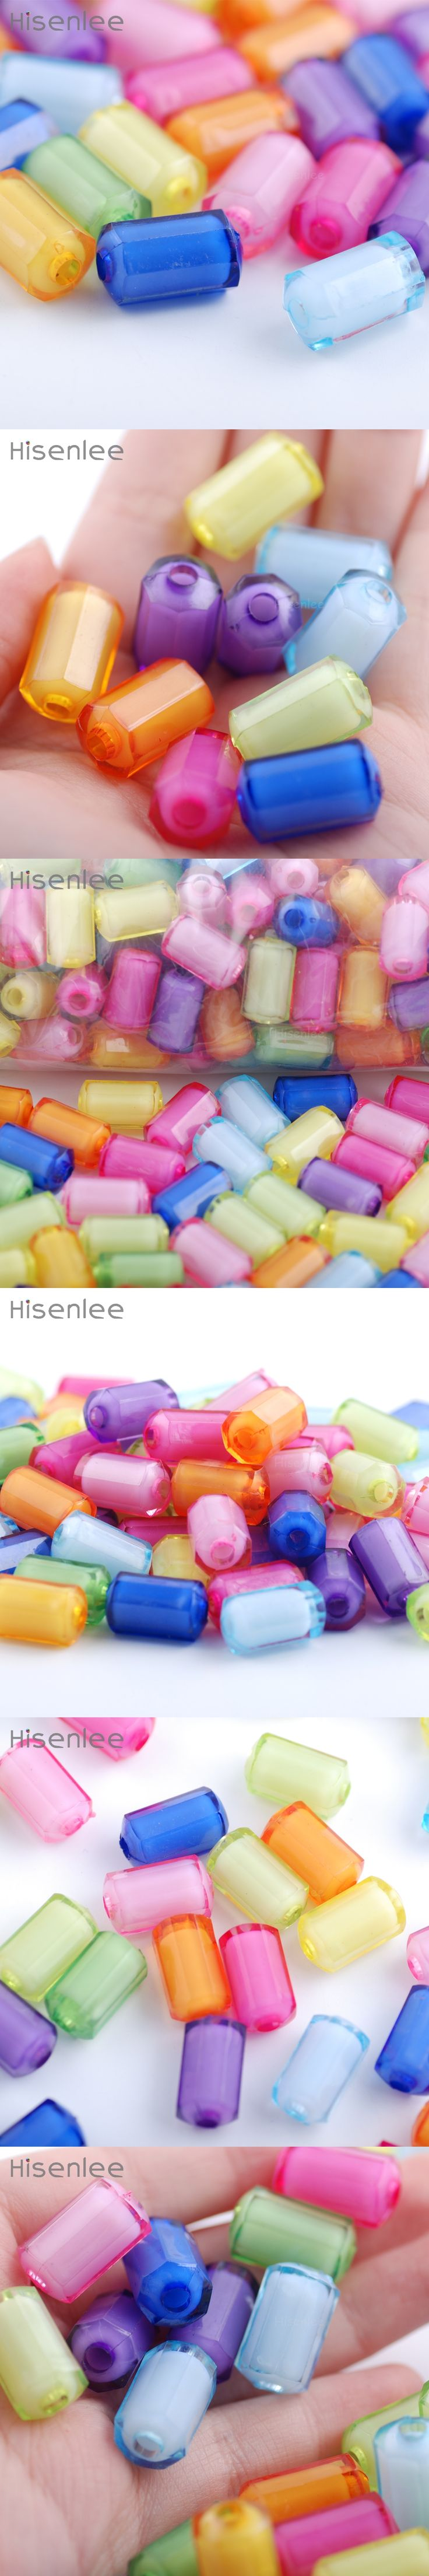 Hisenlee 12MM 20MM Multicolor DIY Hand Catenary Pendant Material Acrylic Cylindrical Bead in Beads BR10006